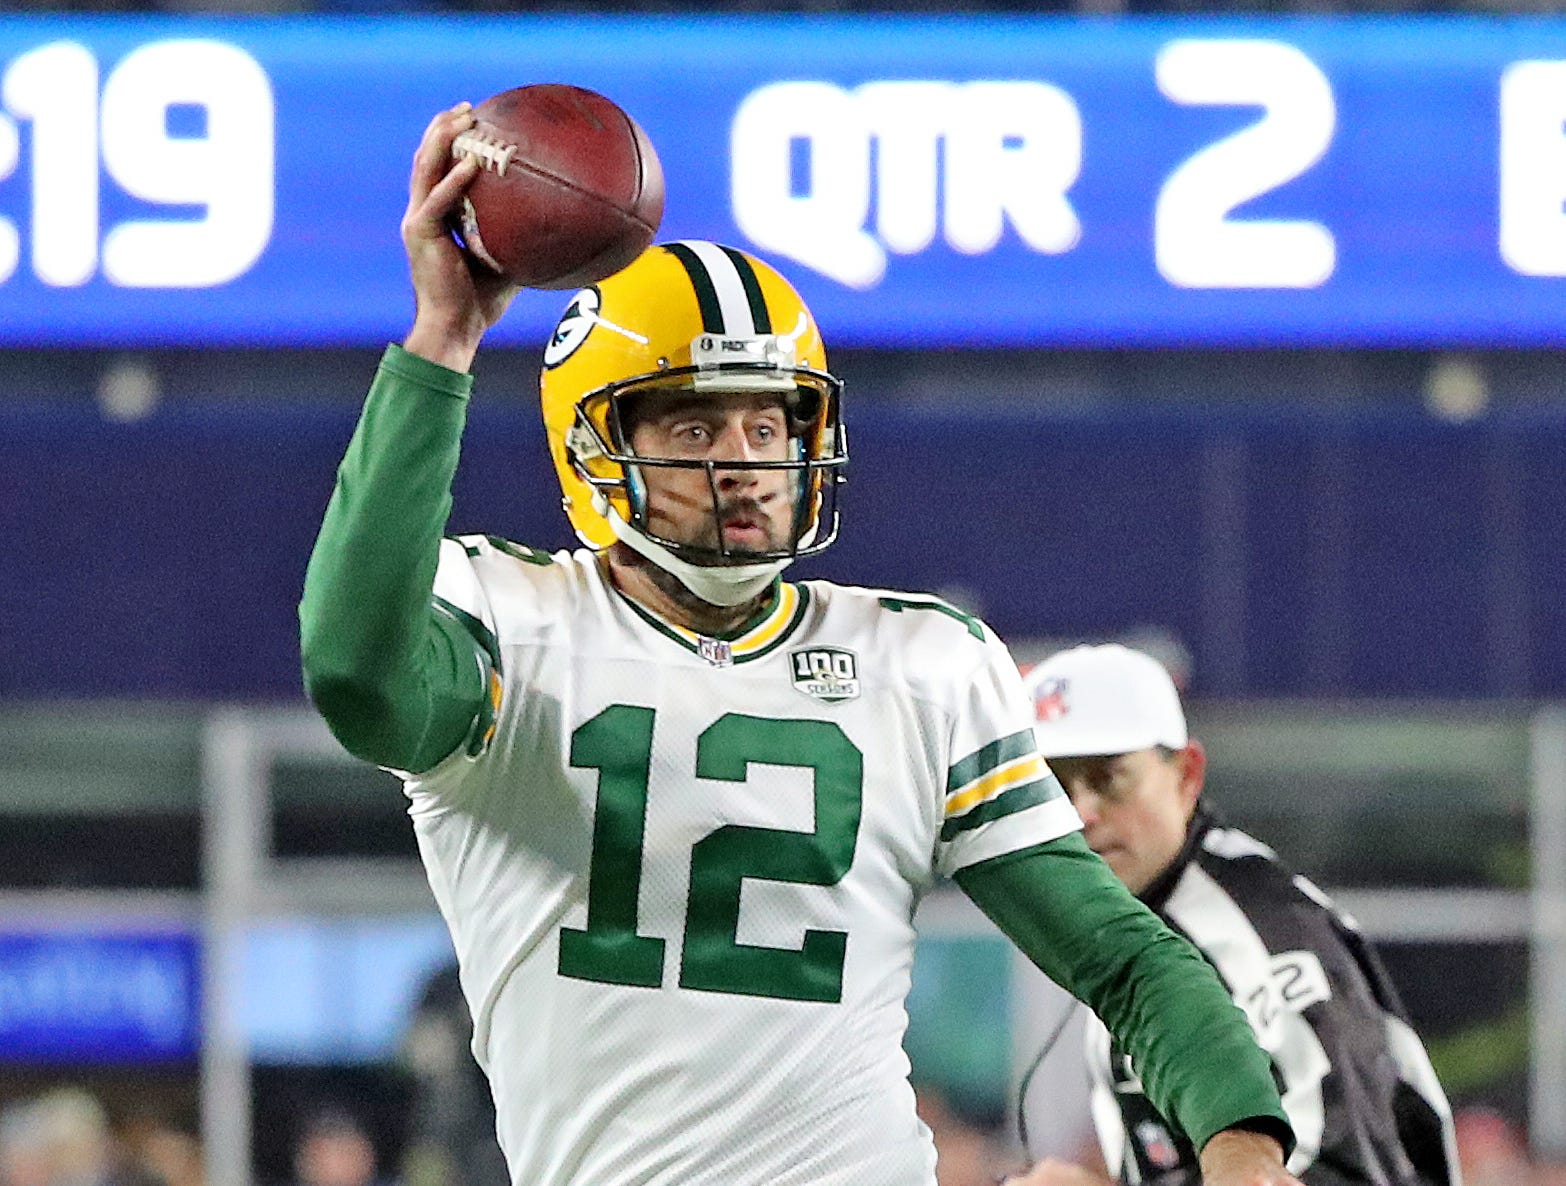 Green Bay Packers quarterback Aaron Rodgers (12) pump fakes on a a run against the New England Patriots Sunday, November 4, 2018 at Gillette Stadium in Foxboro, Mass.